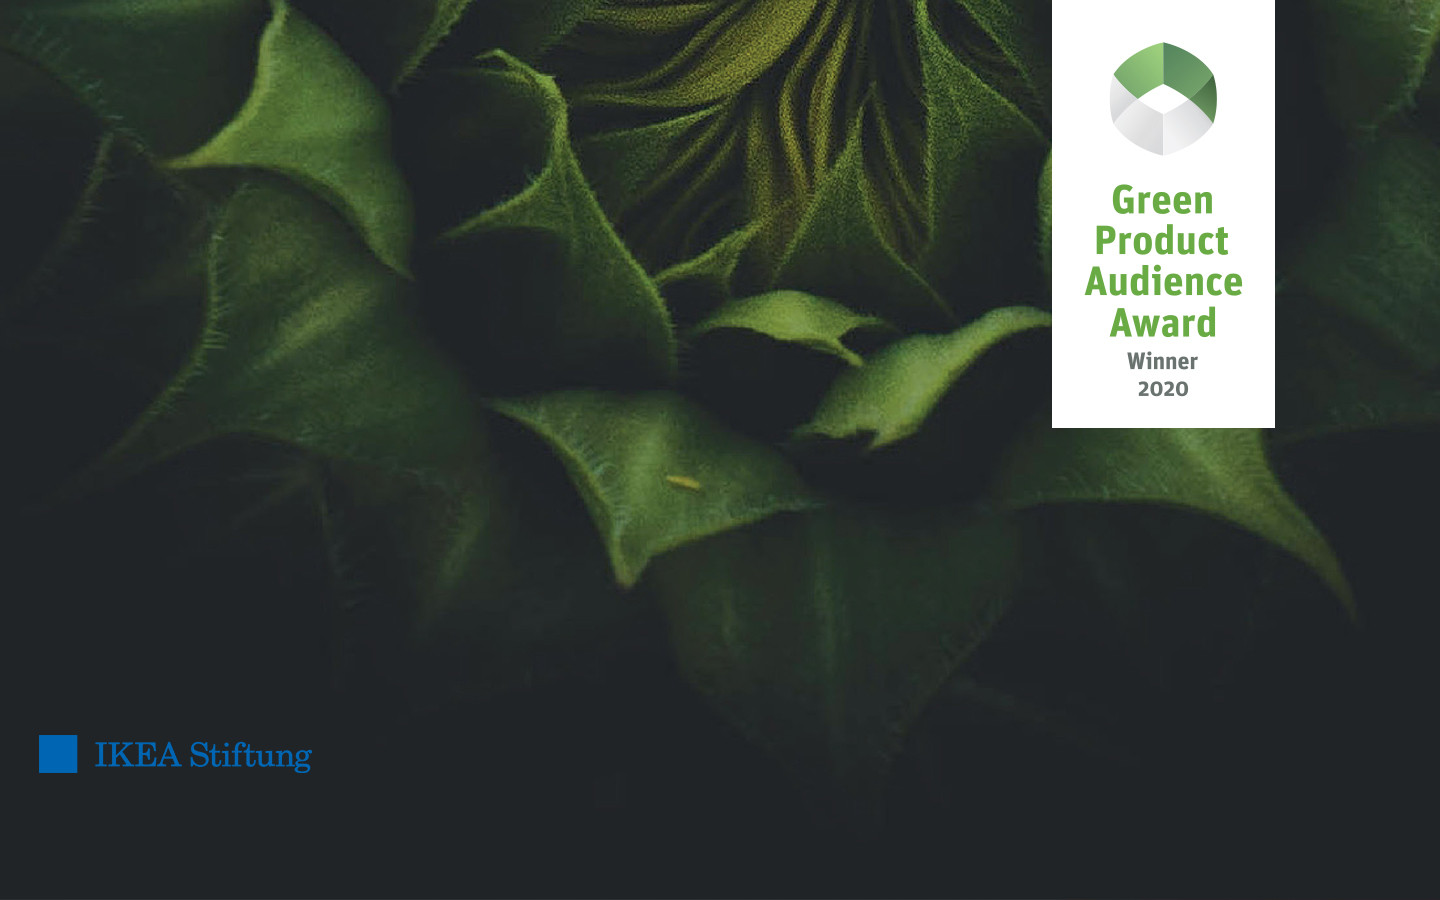 Green Product Audience Award 2020